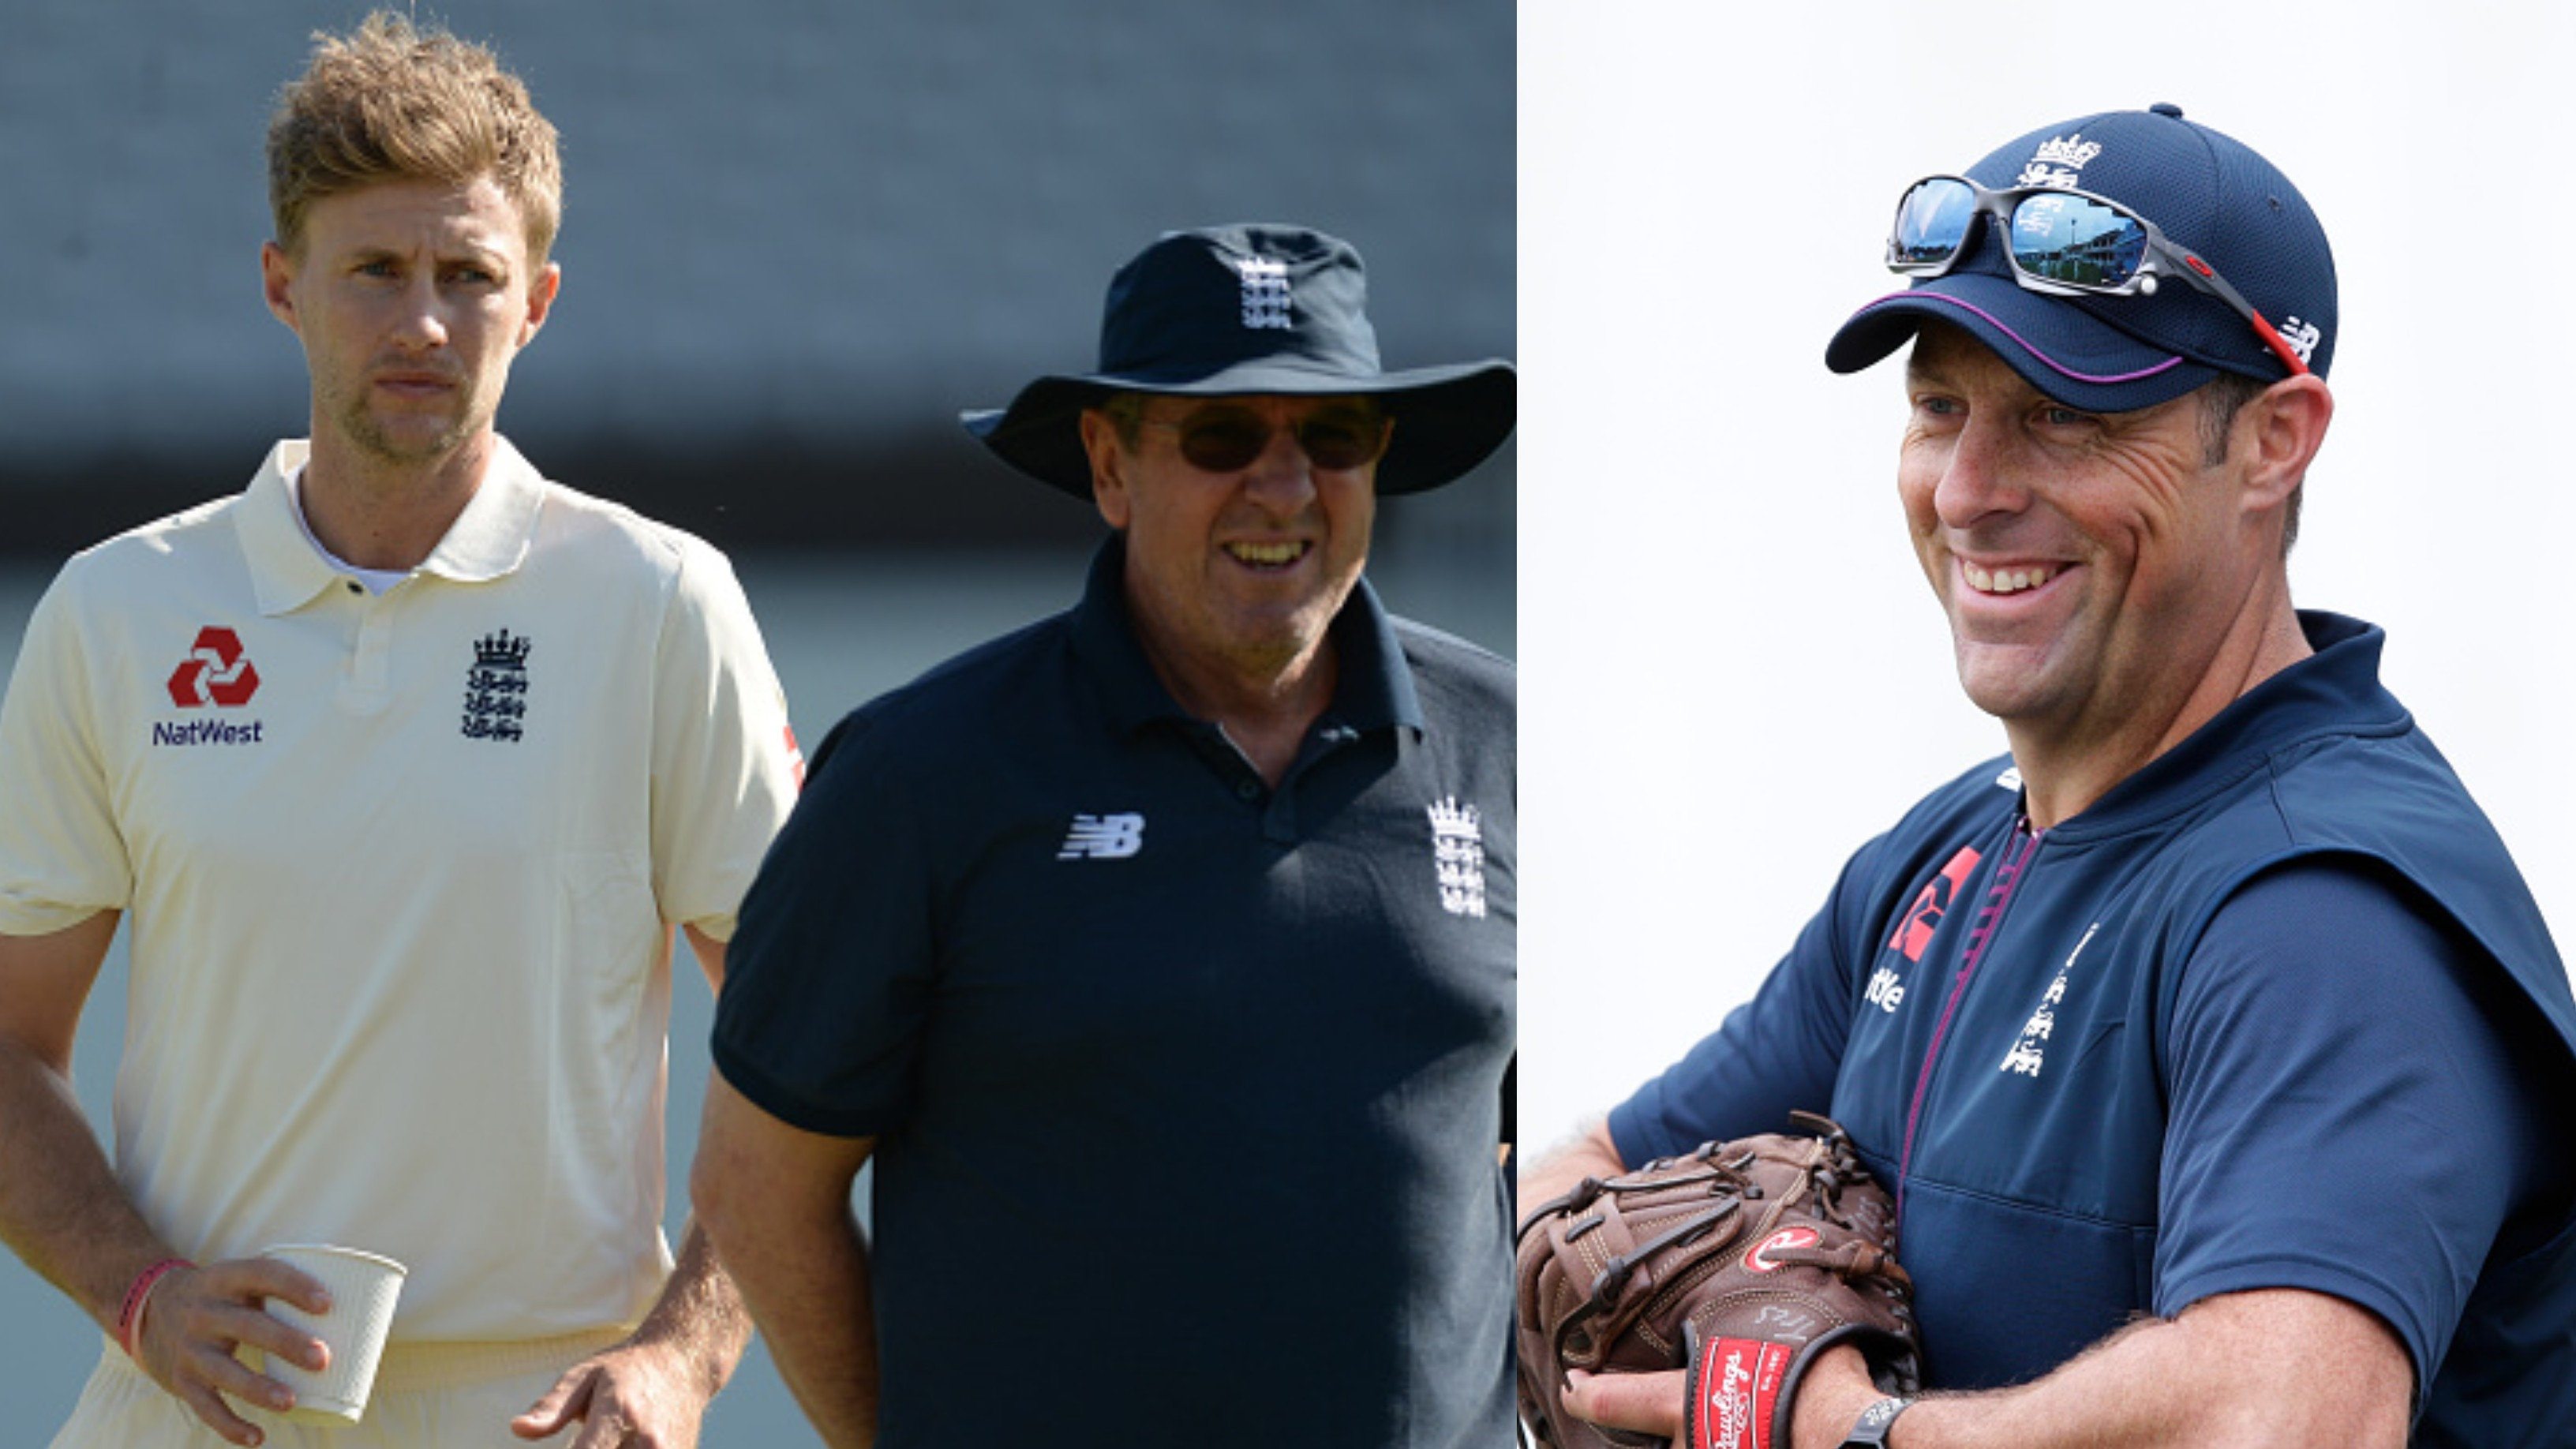 Ashes 2019: Marcus Trescothick to join England's coaching set-up for the Ashes series